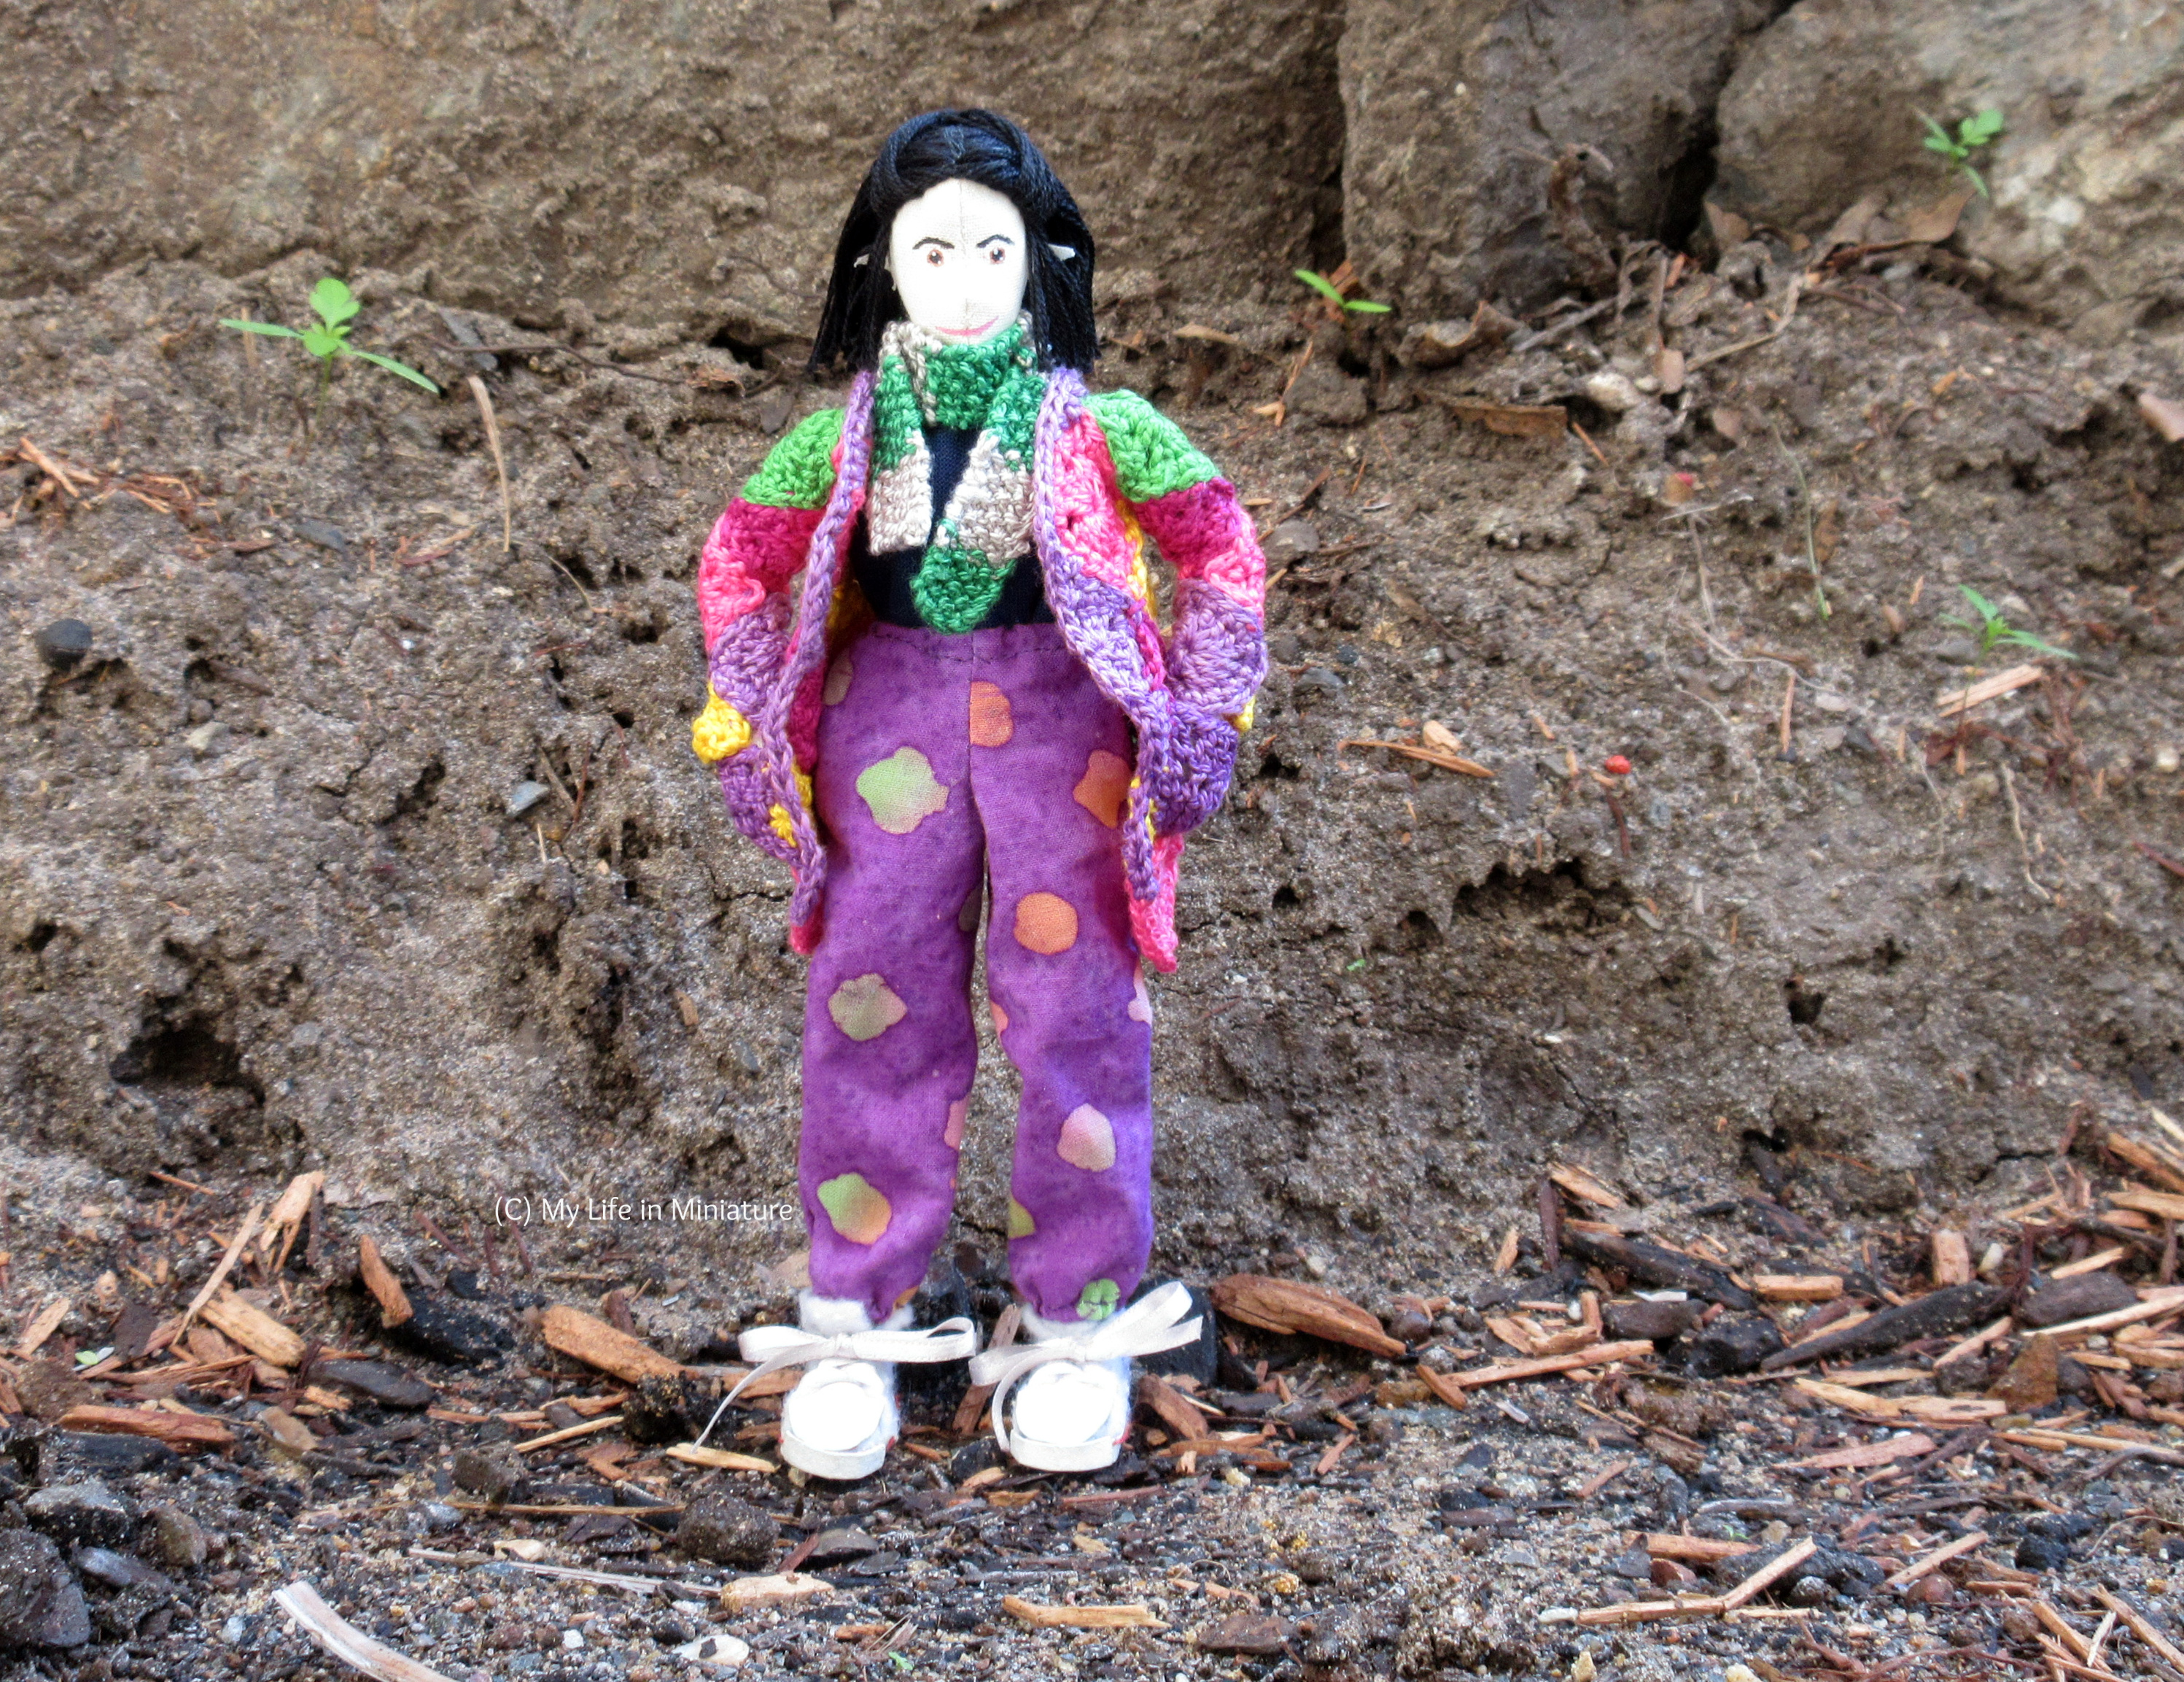 Tiffany stands outside, against a dirt wall. She wears the purple, loose pants with a navy top, her crocheted cardigan, and a scarf. She looks at the camera, hands in cardigan pockets.